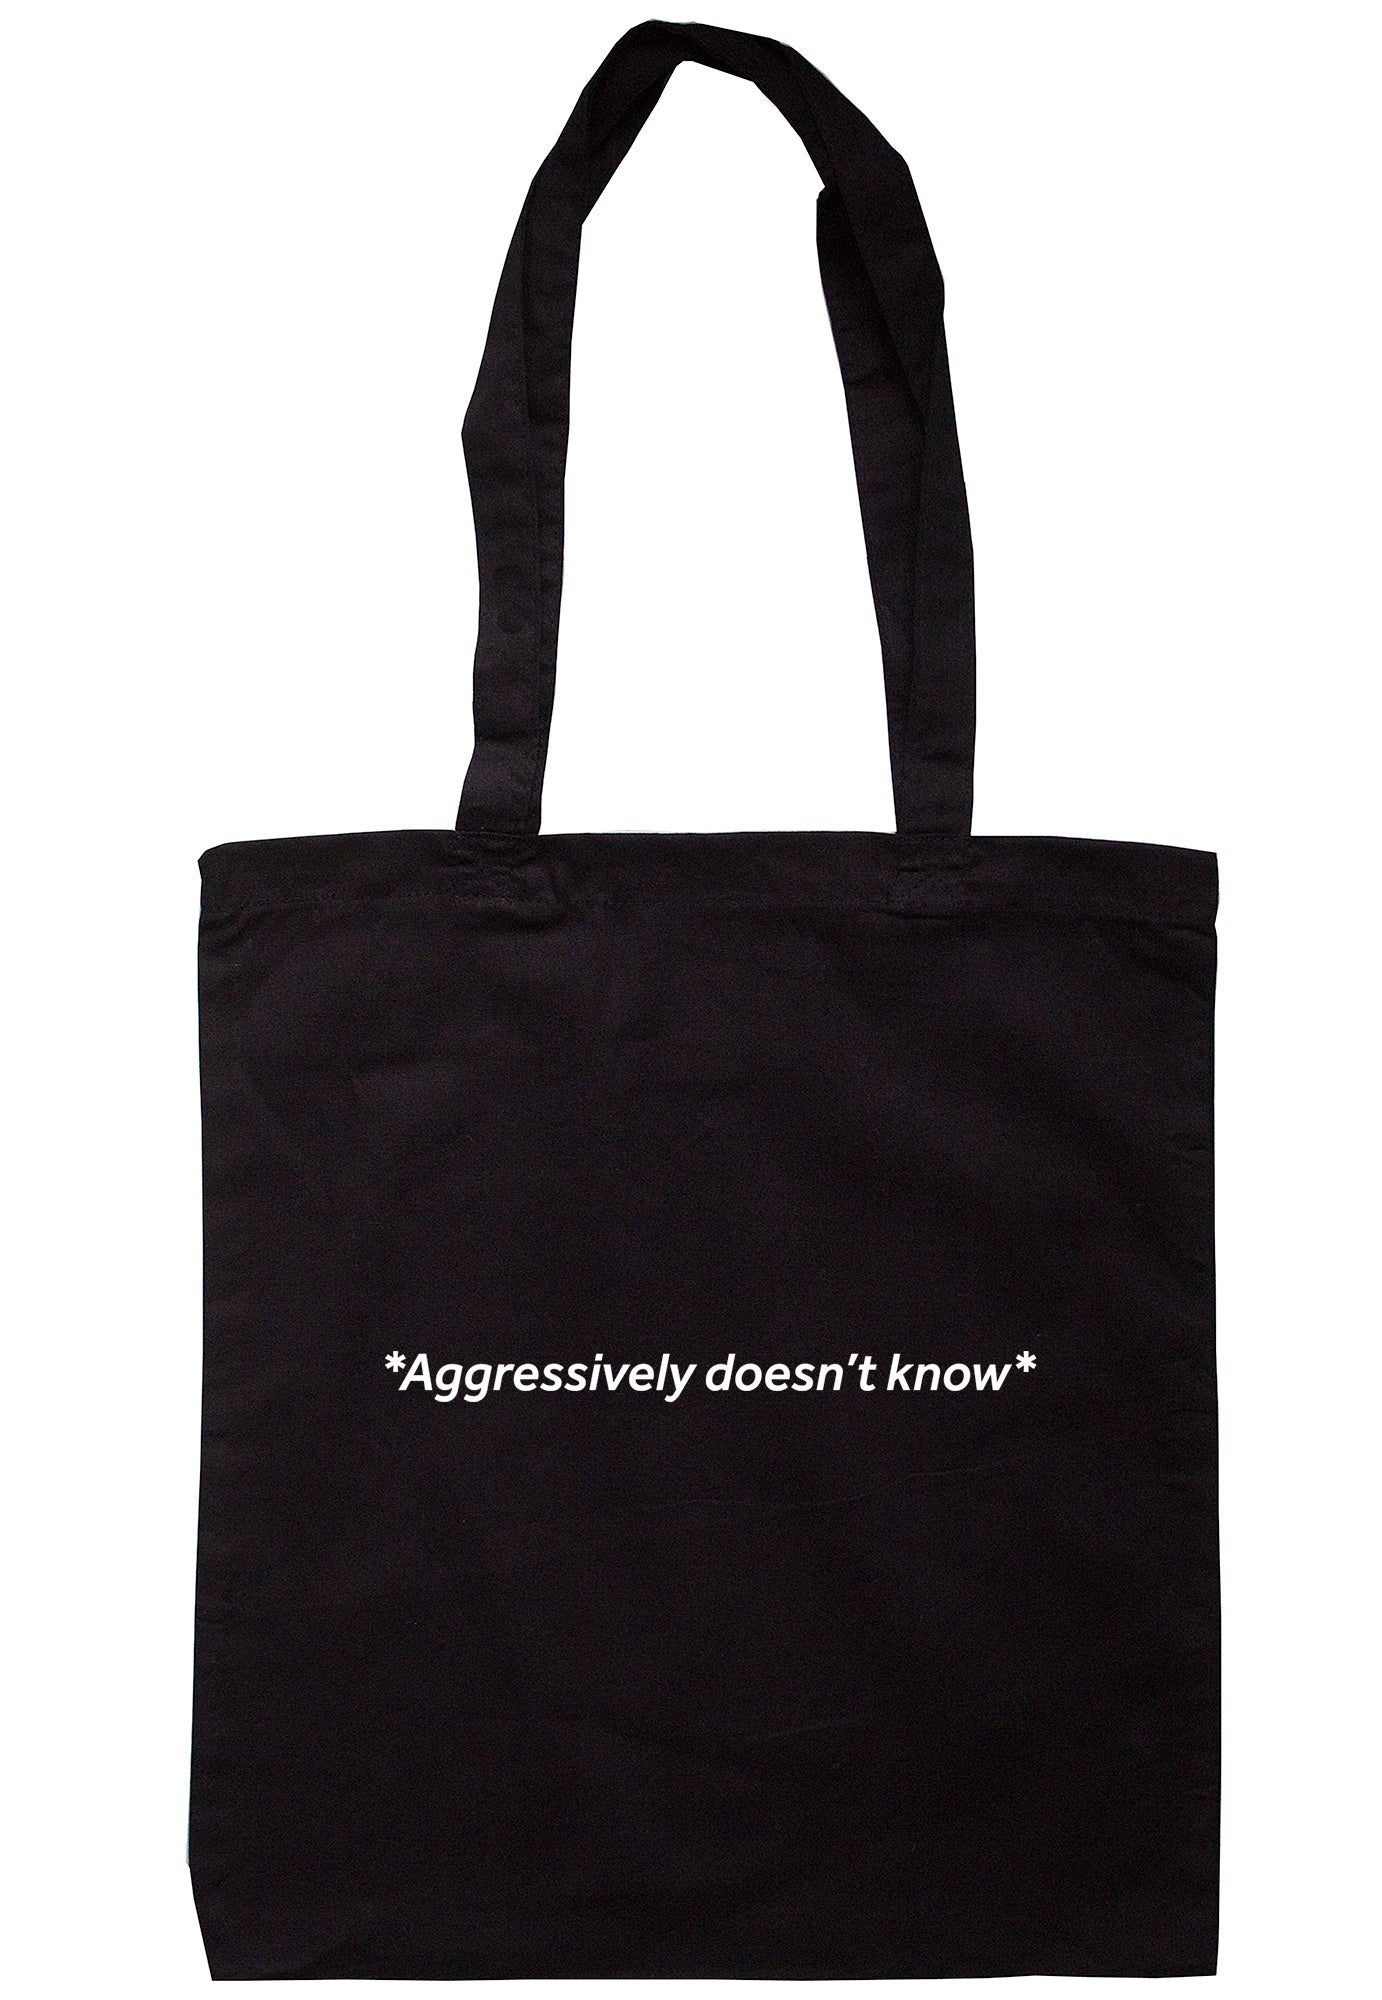 *Aggressively Doesn't Know* Tote Bag S0949 - Illustrated Identity Ltd.